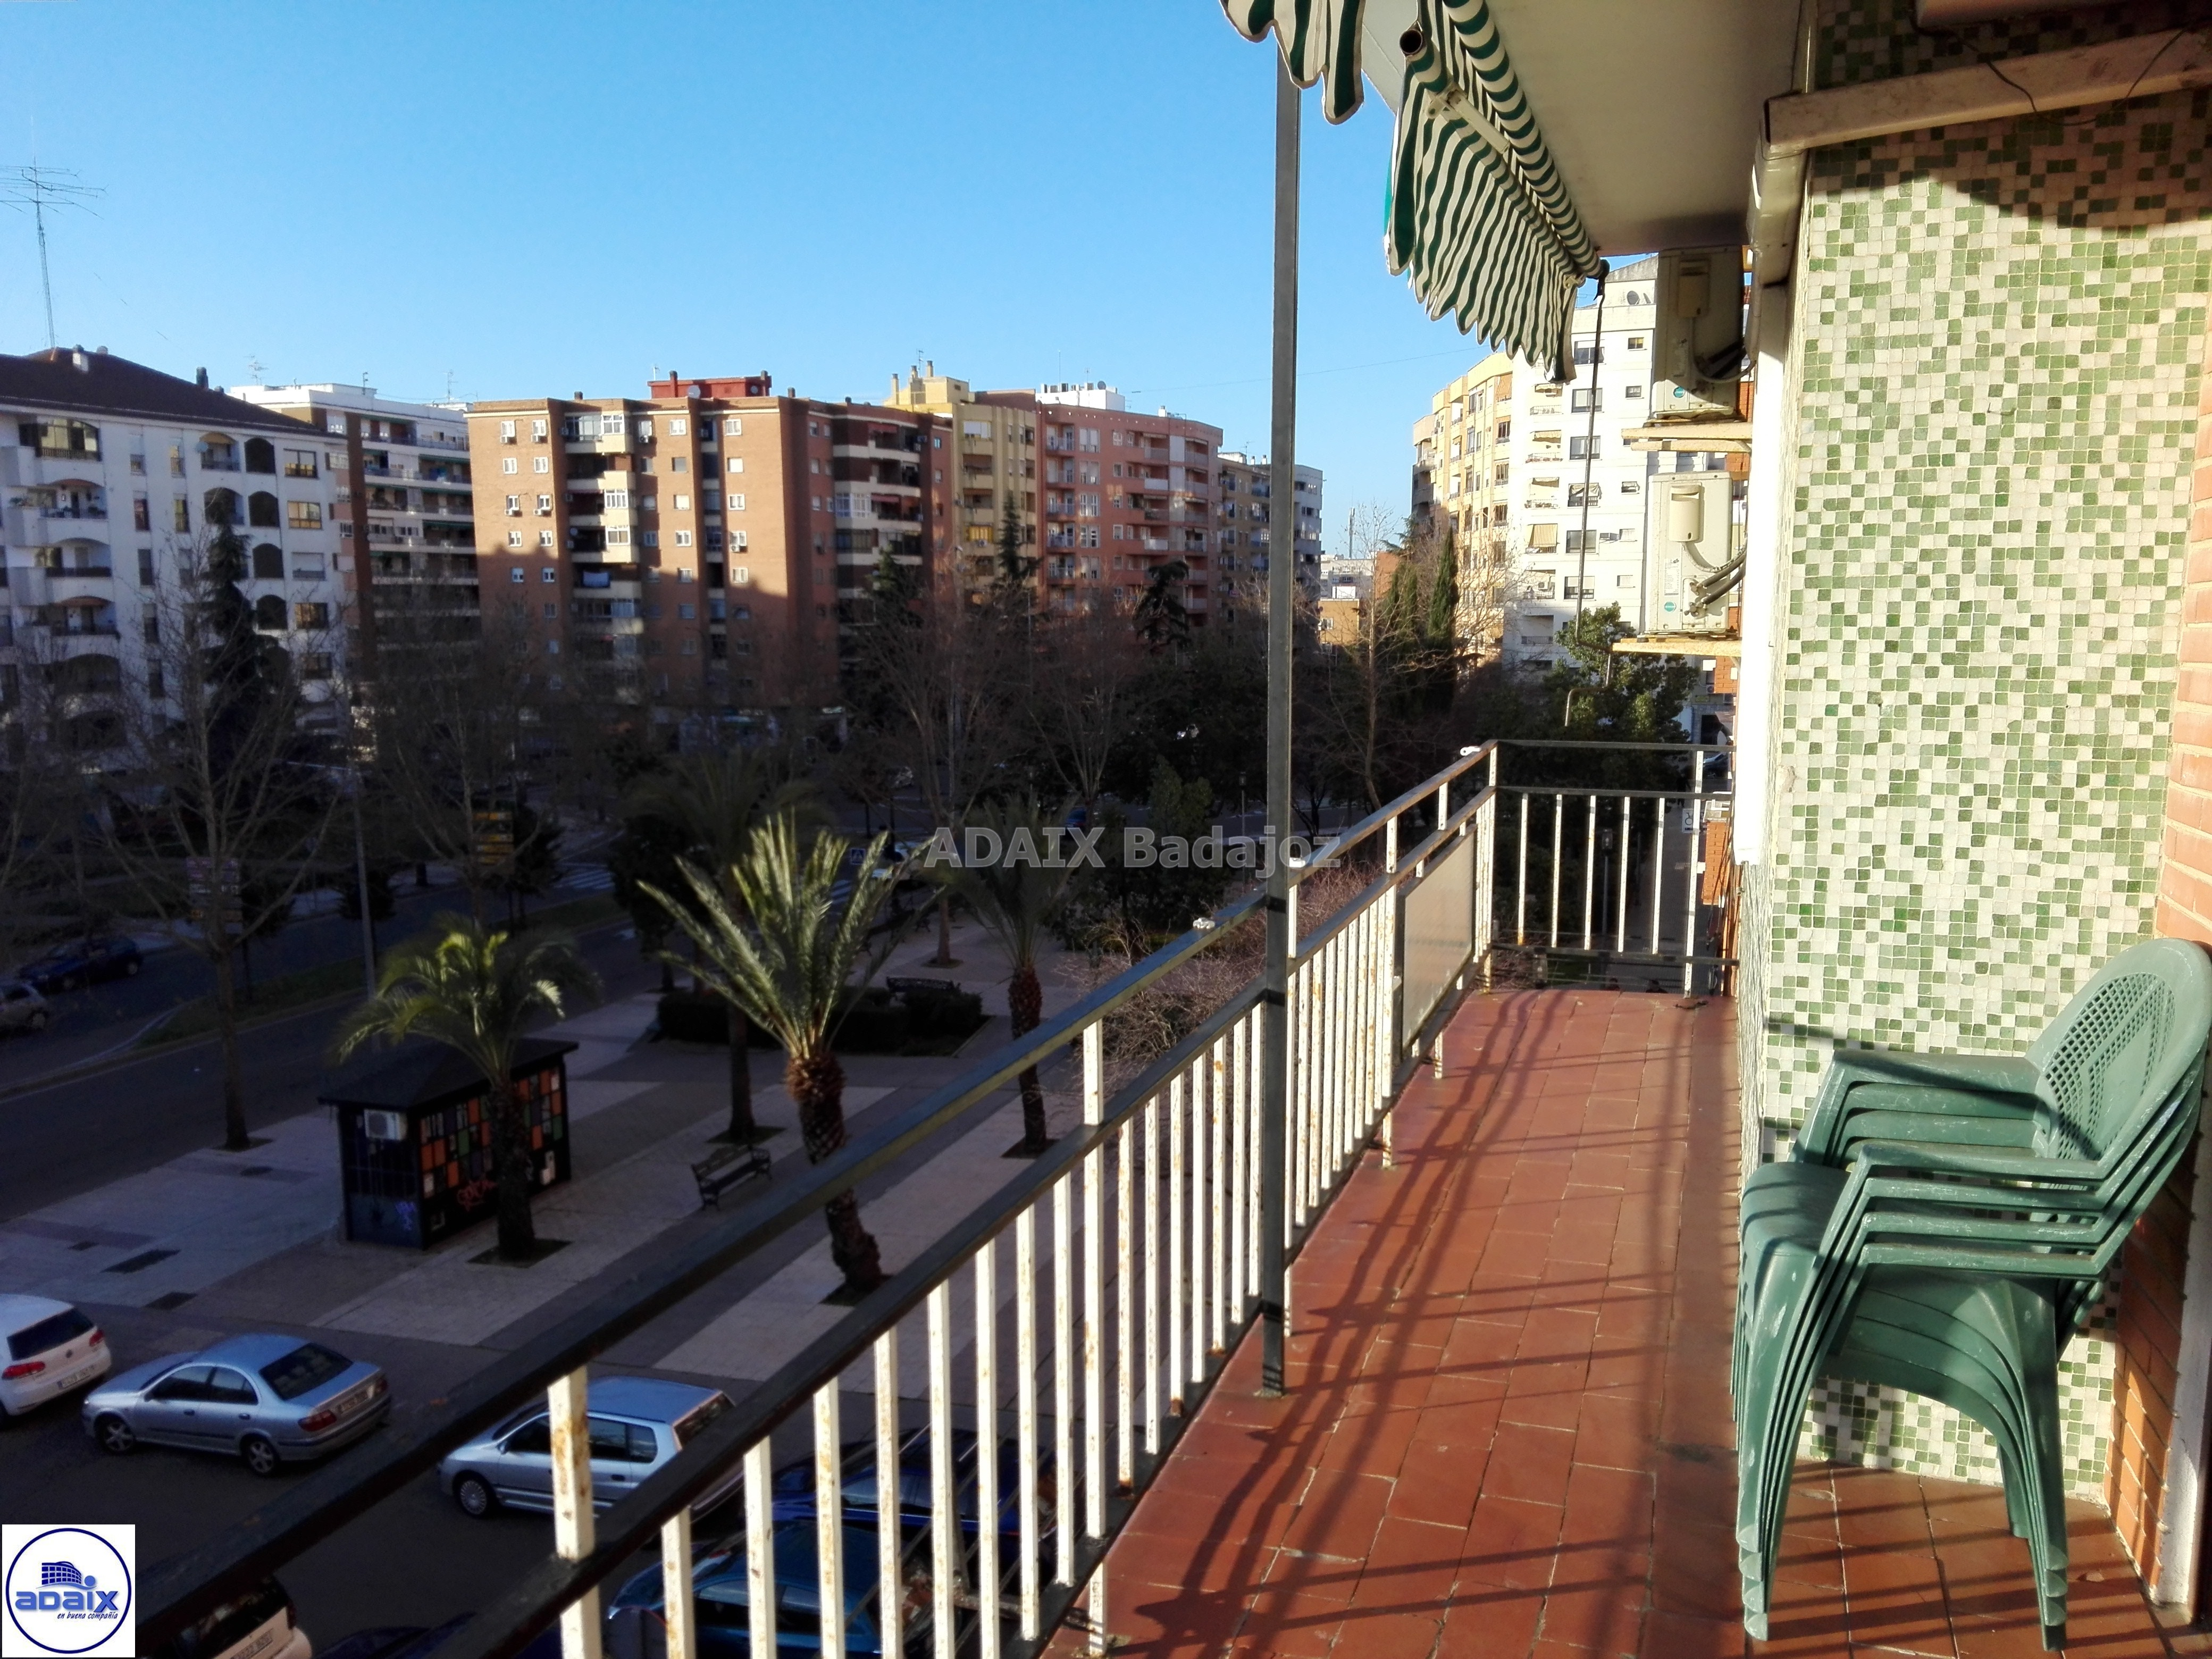 Appartement Location à Badajoz